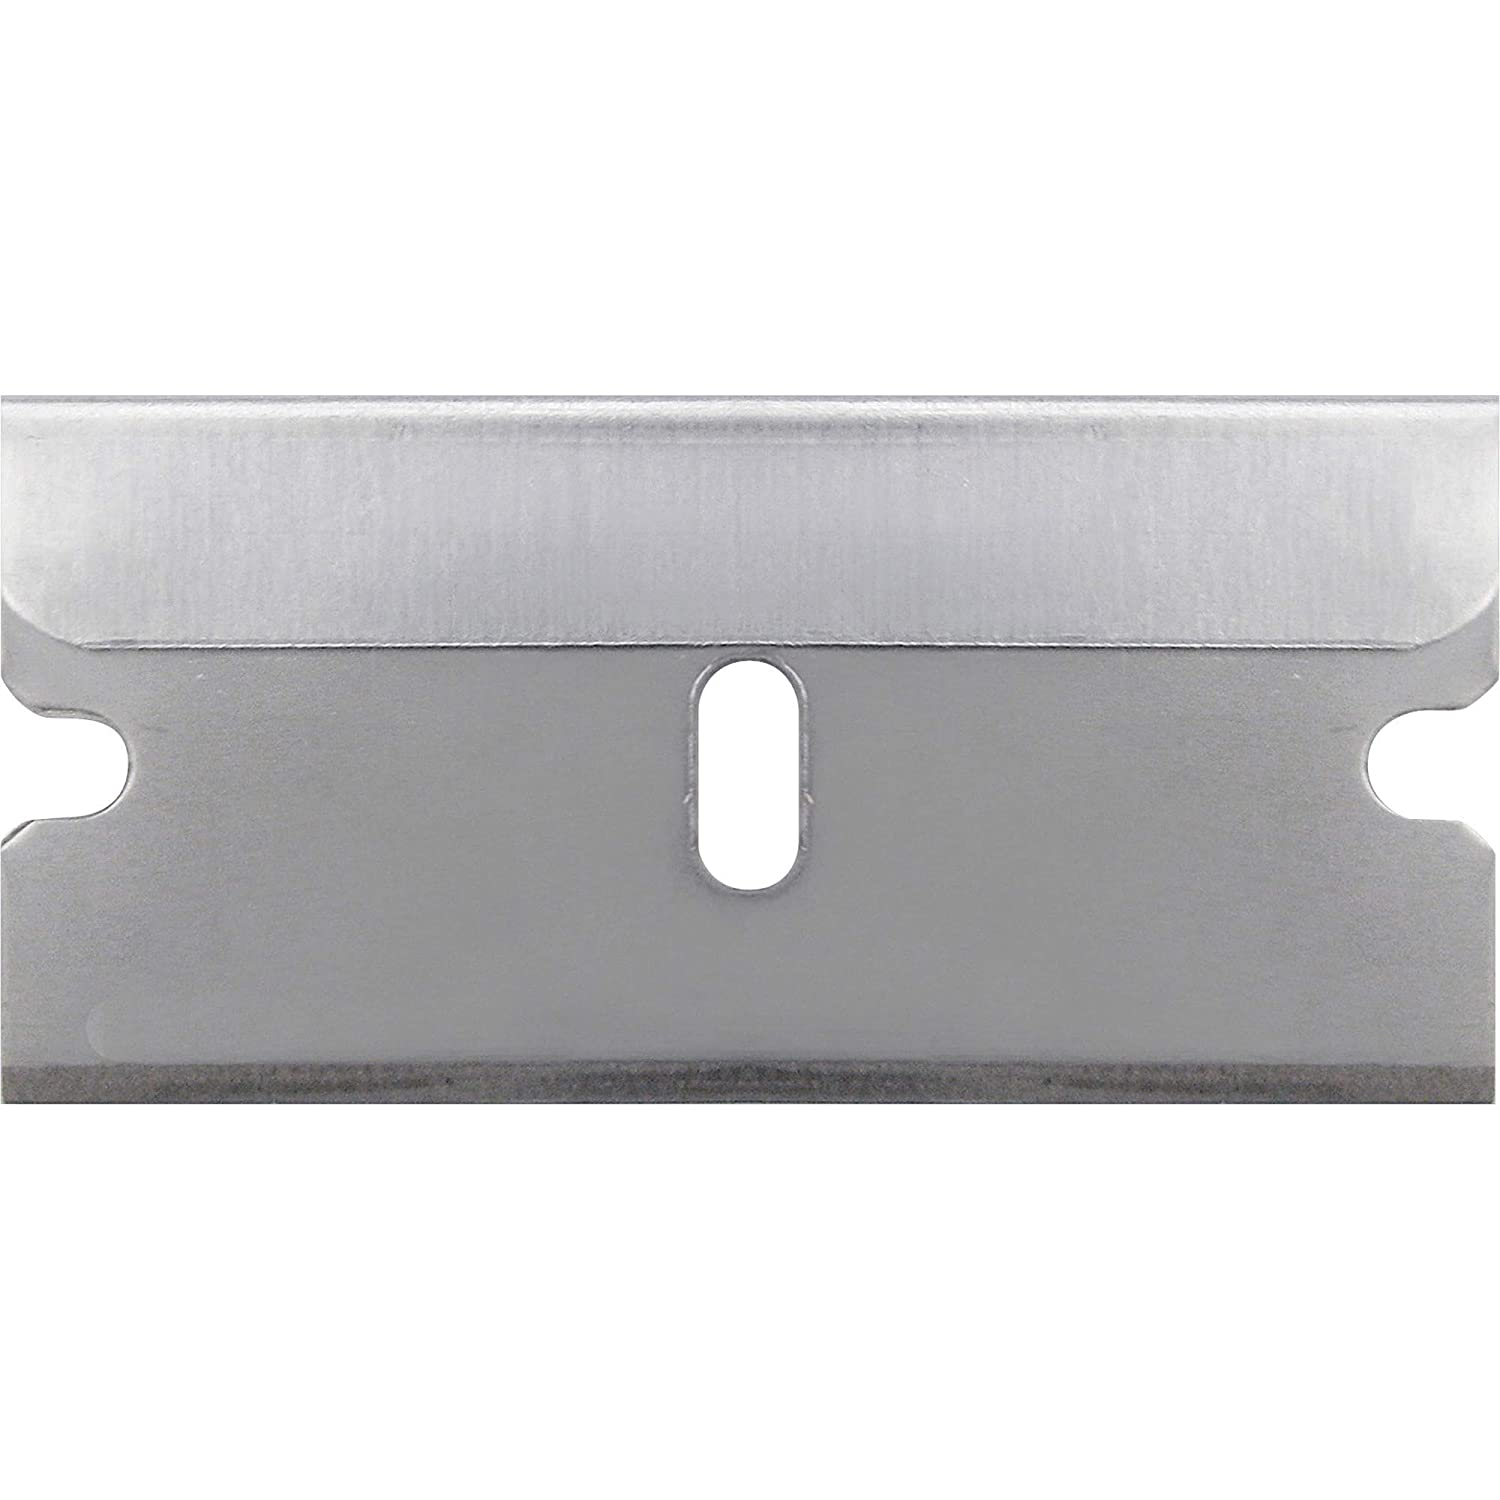 Sparco 11820 Replacement Razor Selling and selling Blades 100 Single-Edge BX Silv Ranking TOP5